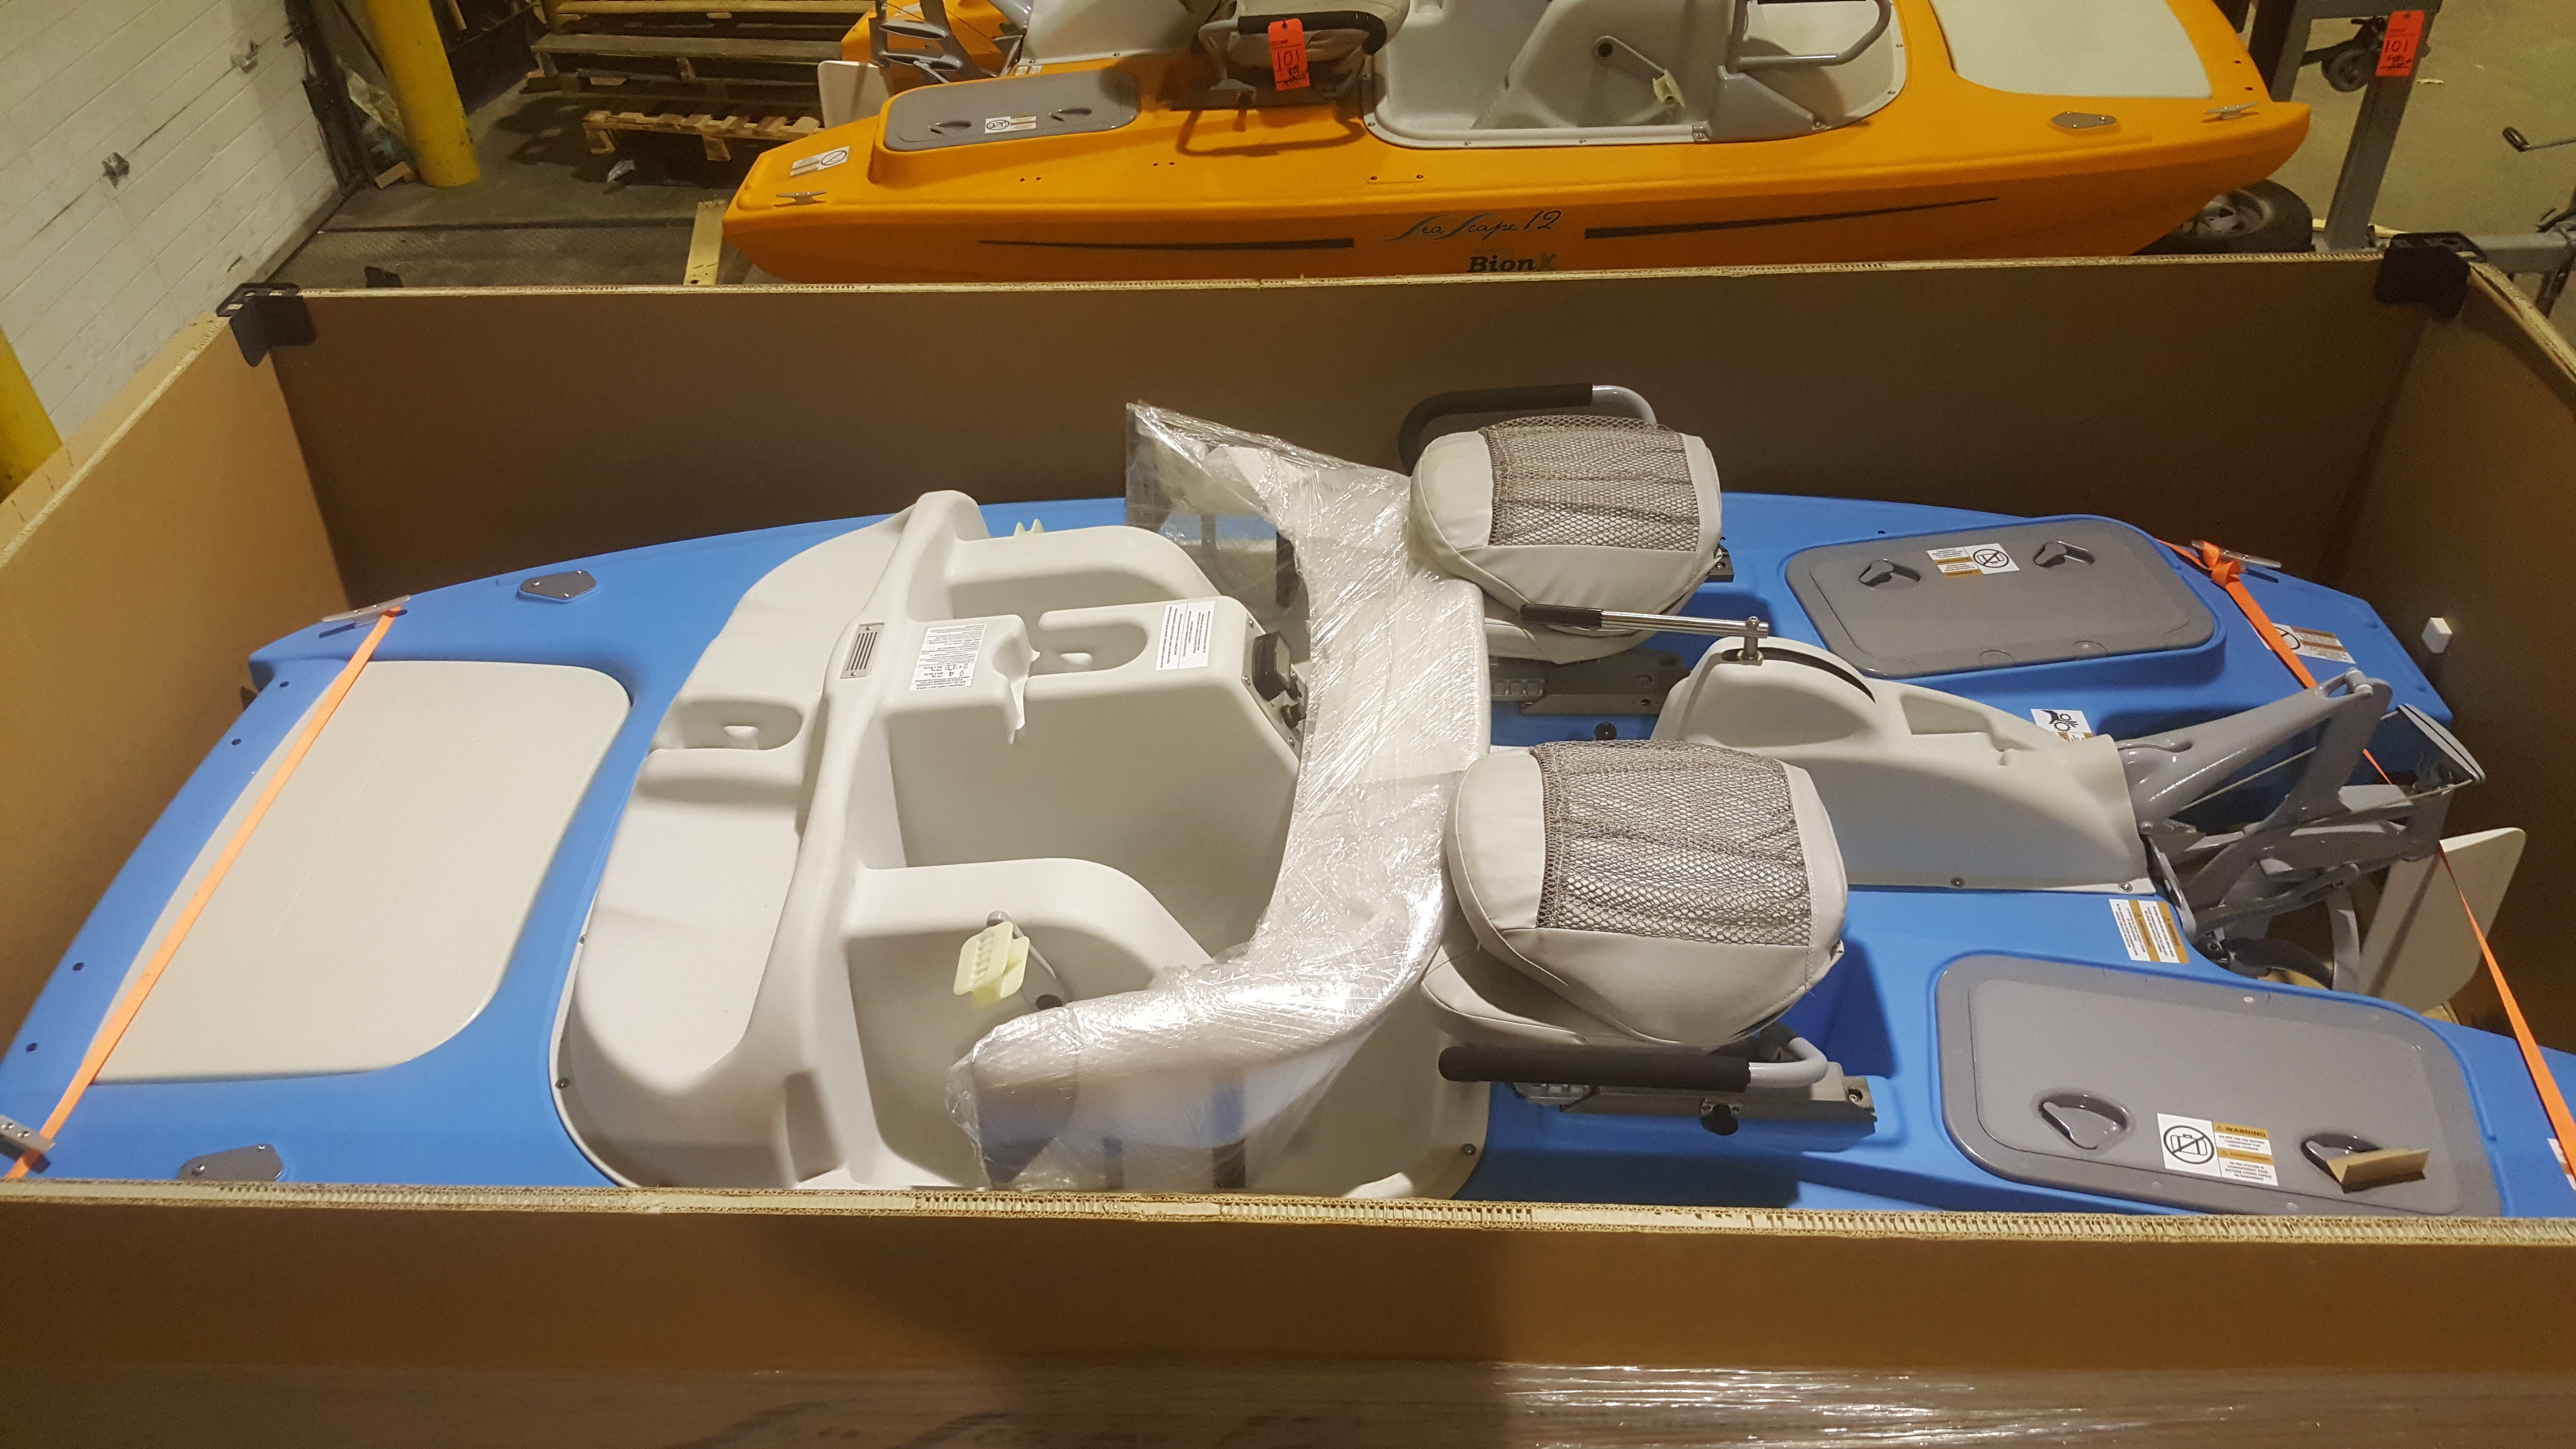 Lot 102 - BIONX SeaScape 12-Pedal electric paddle boat (in crate)